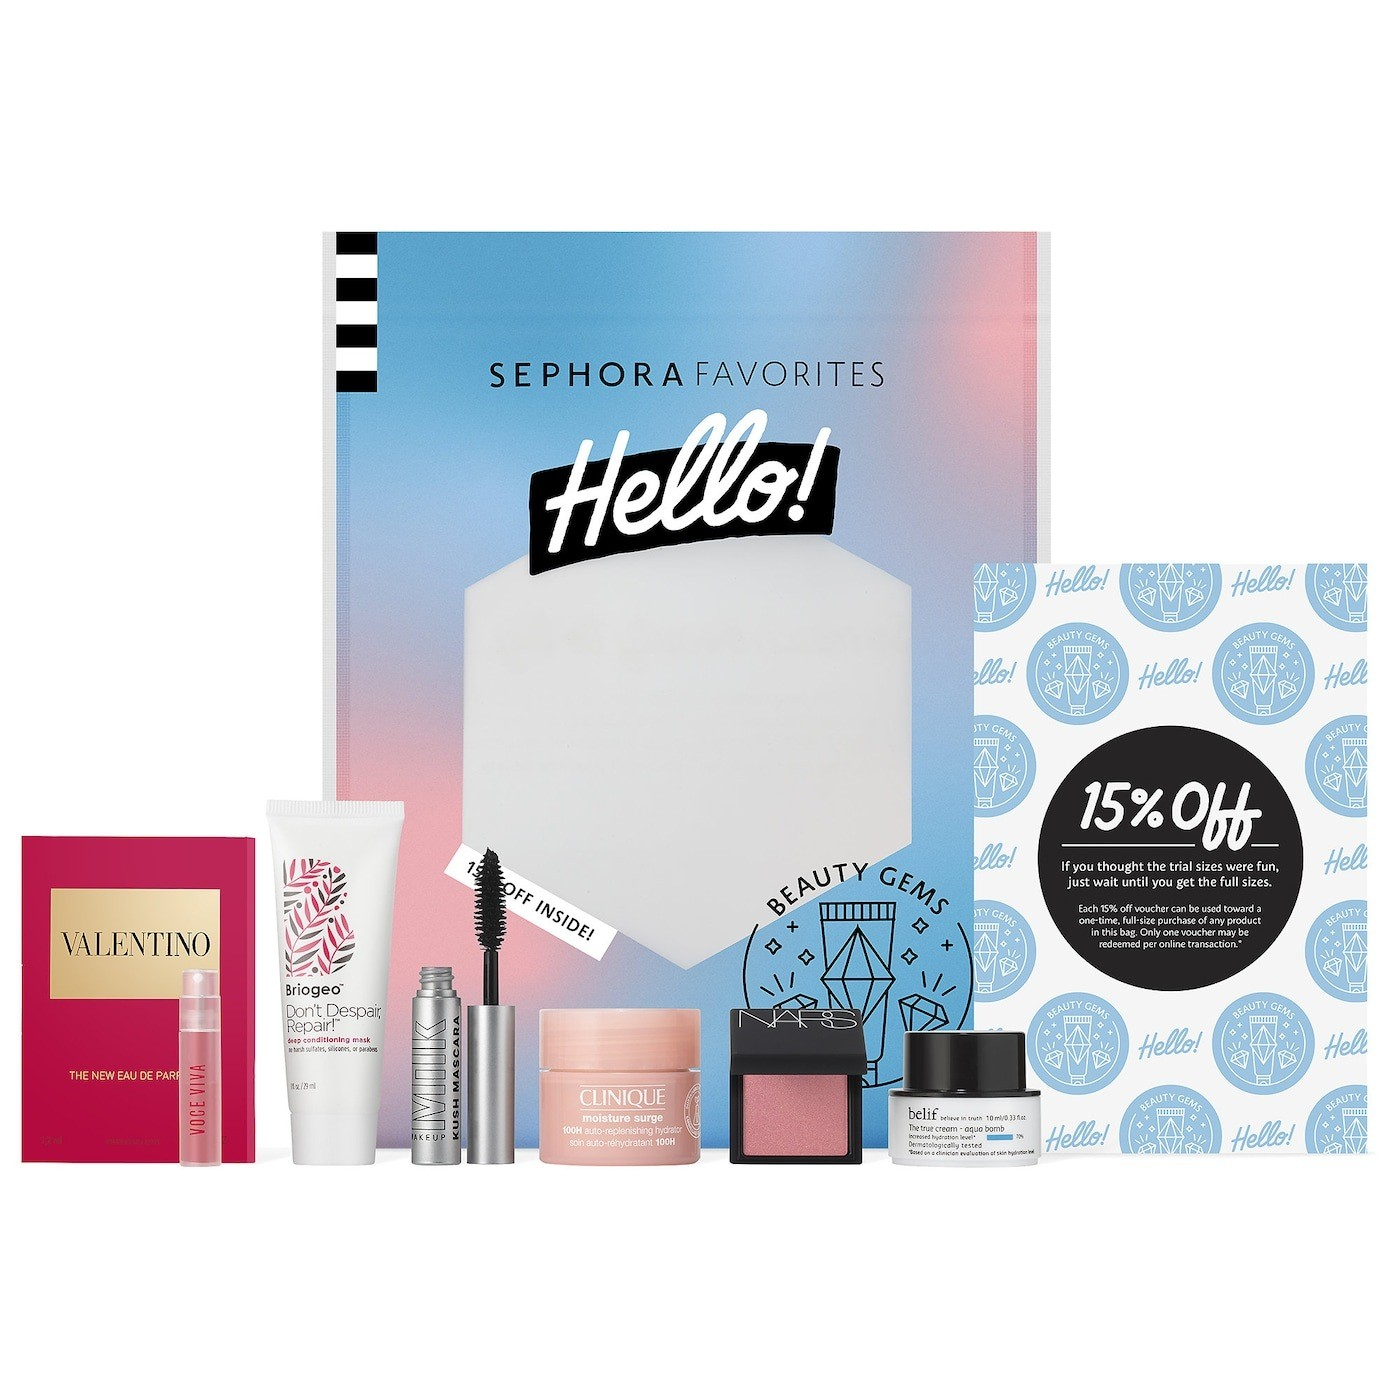 SEPHORA Favorites Hello! Beauty Big Shots – On Sale Now